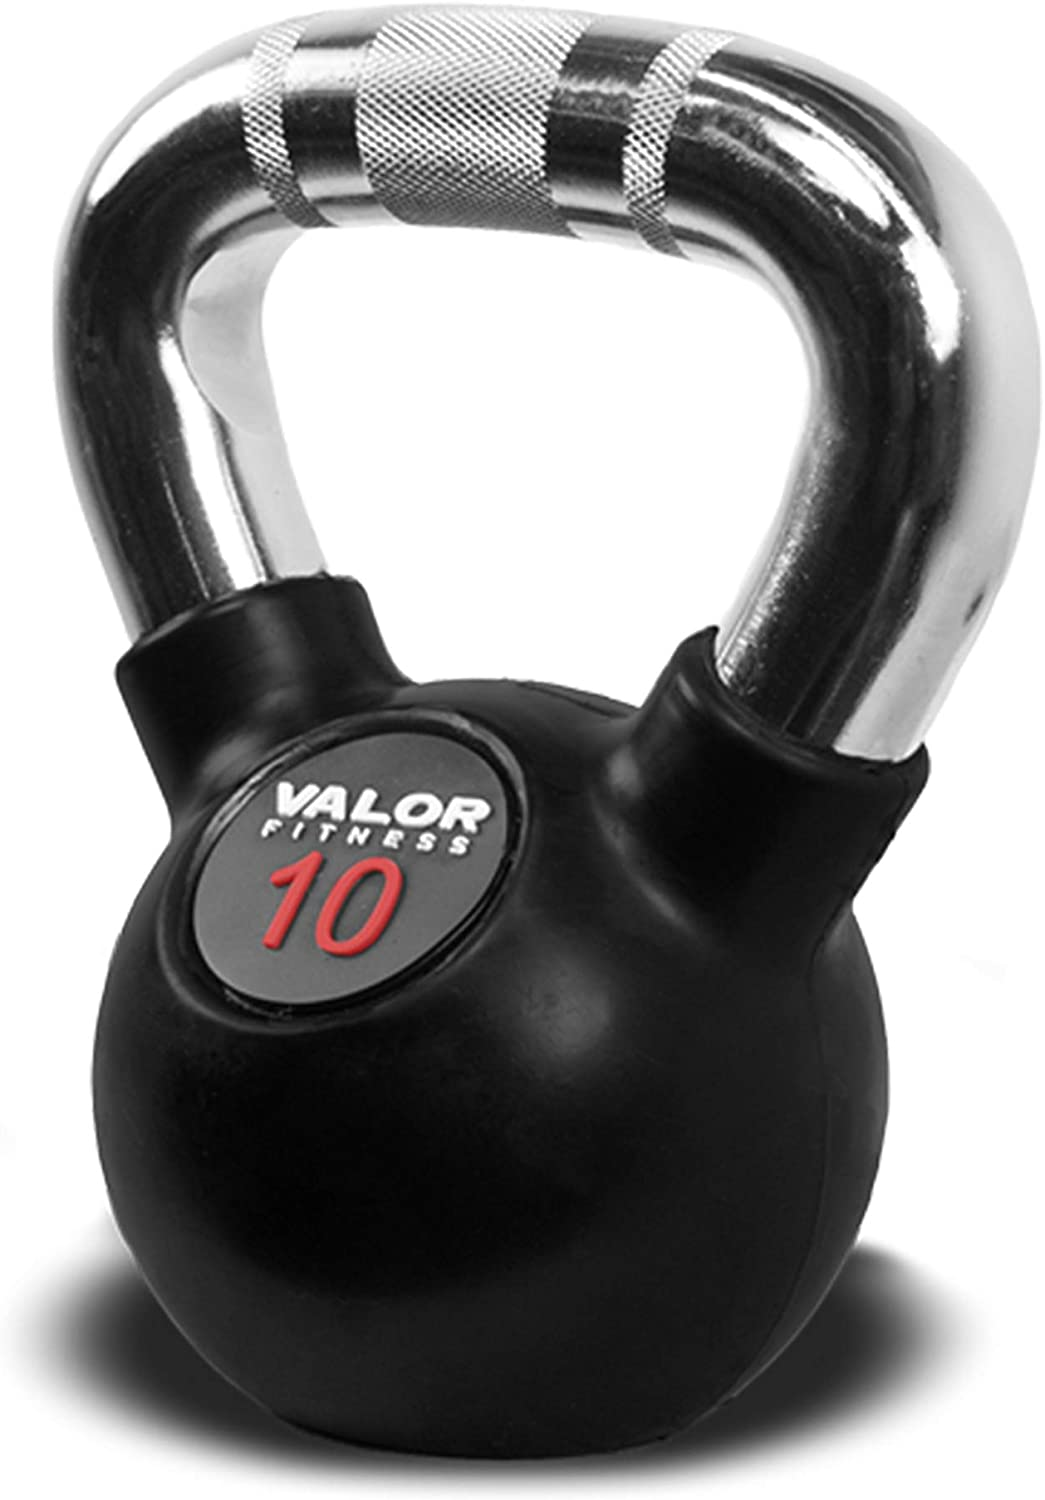 Valor Fitness CKB Chrome Kettlebell with Knurled Grip Handle